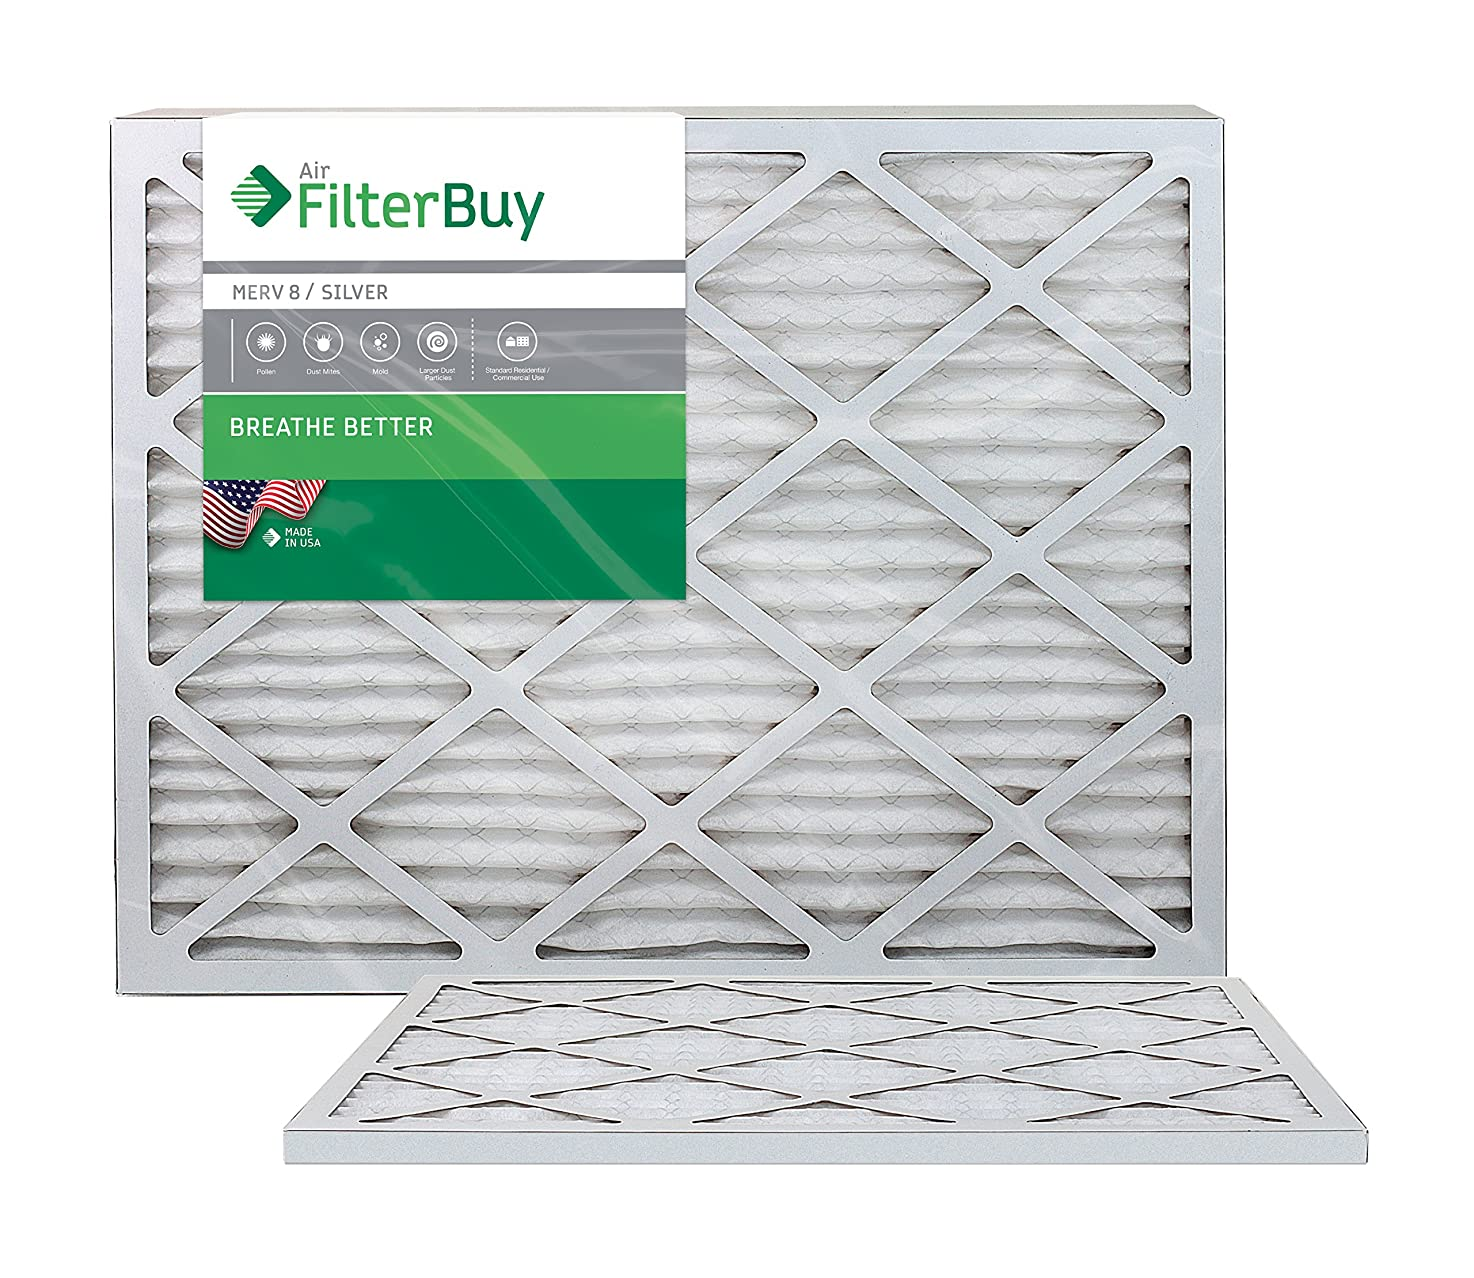 FilterBuy 23.5x23.5x1 MERV 8 Pleated AC Furnace Air Filter, (Pack of 2 Filters), 23.5x23.5x1 – Silver